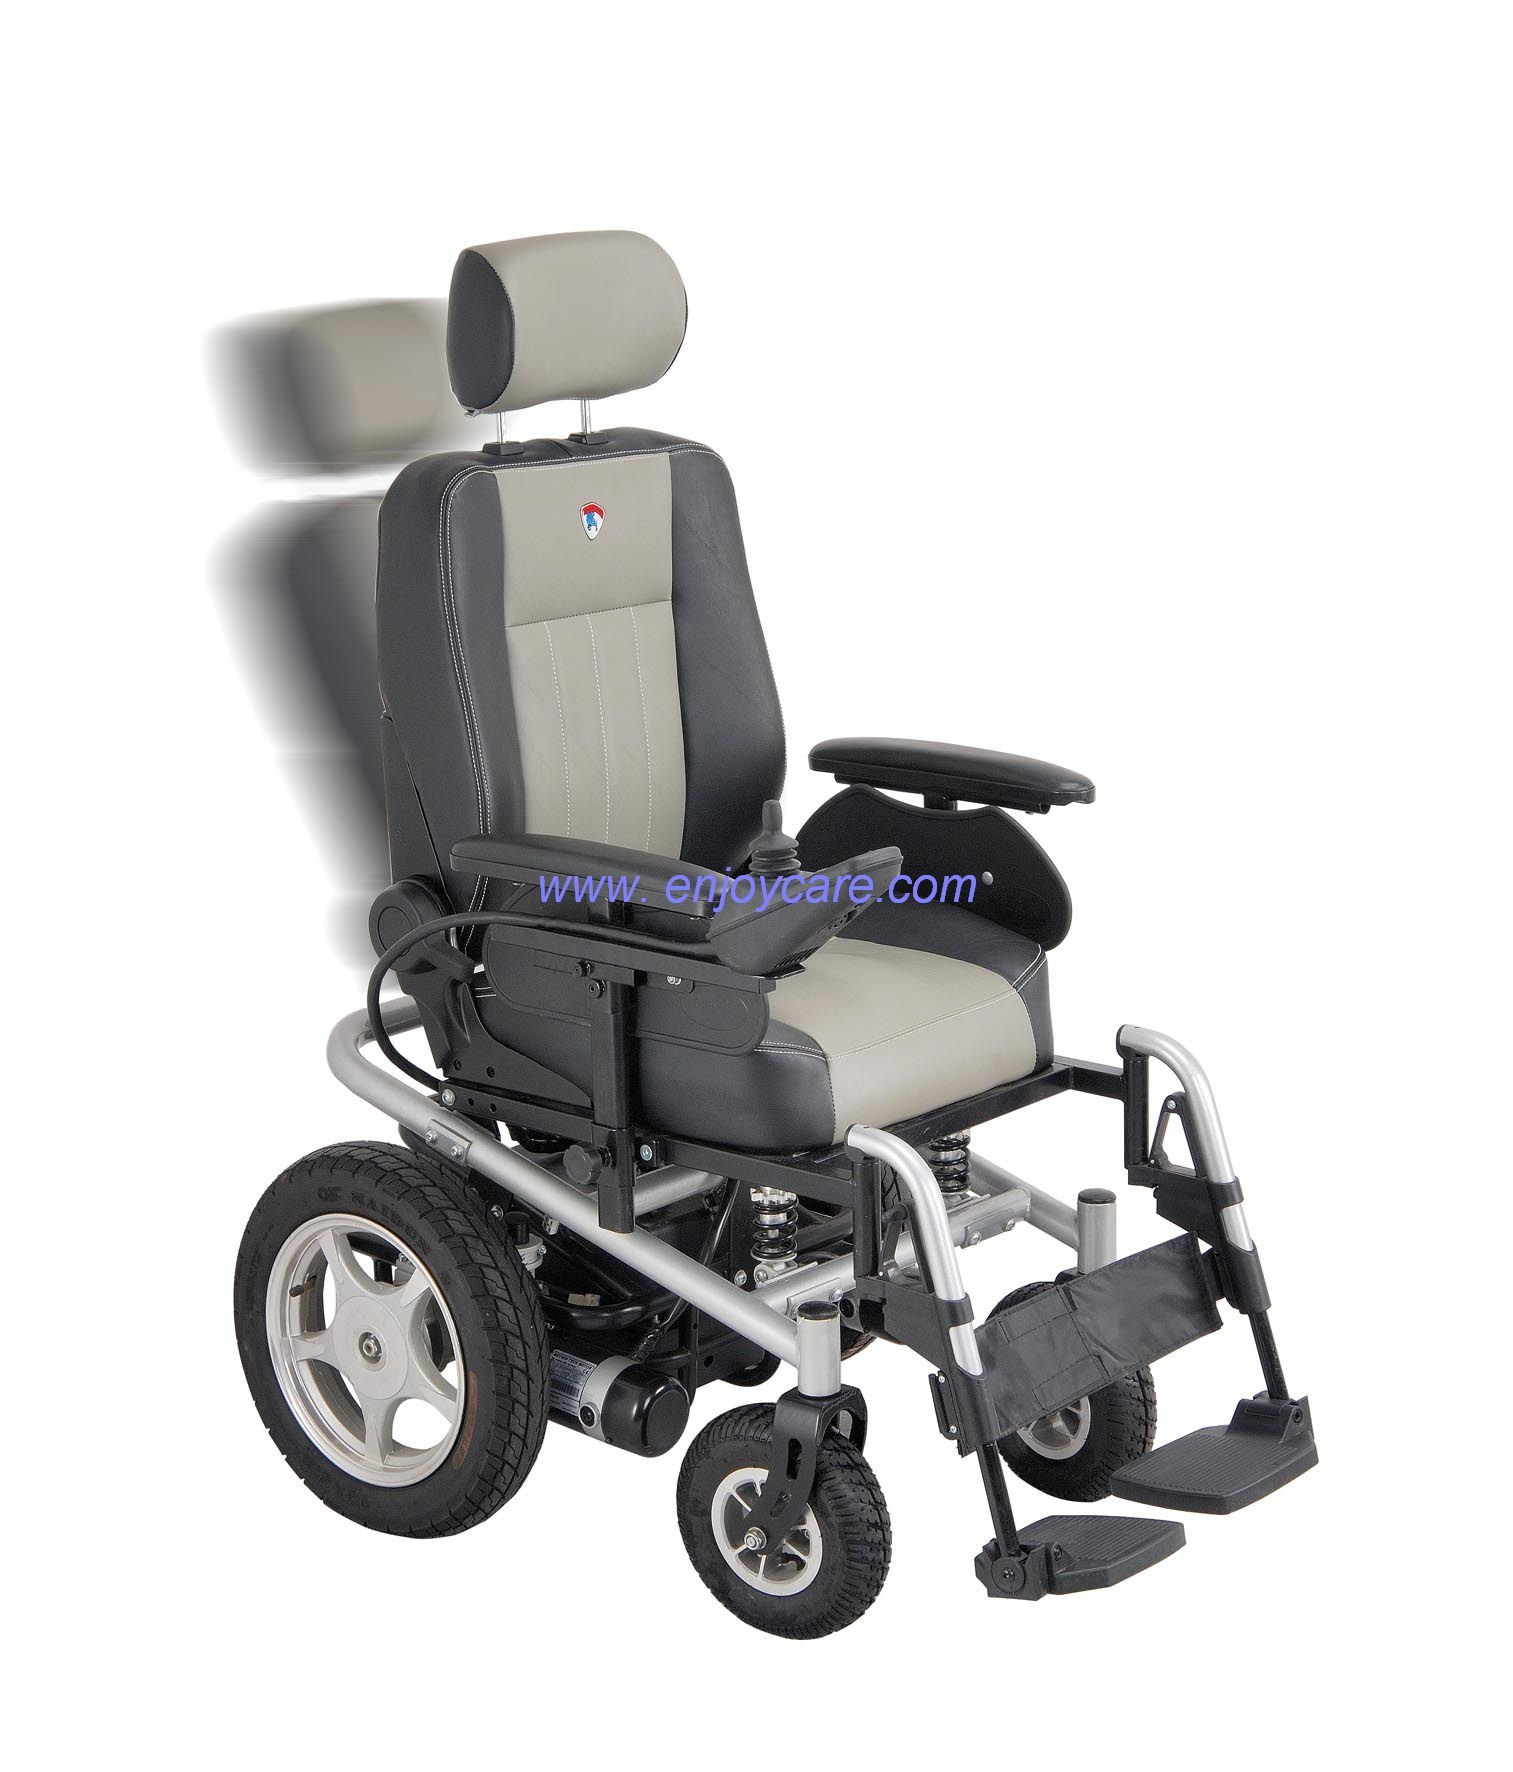 wheelchair ebay couch loveseat and chair covers all terrain autos post